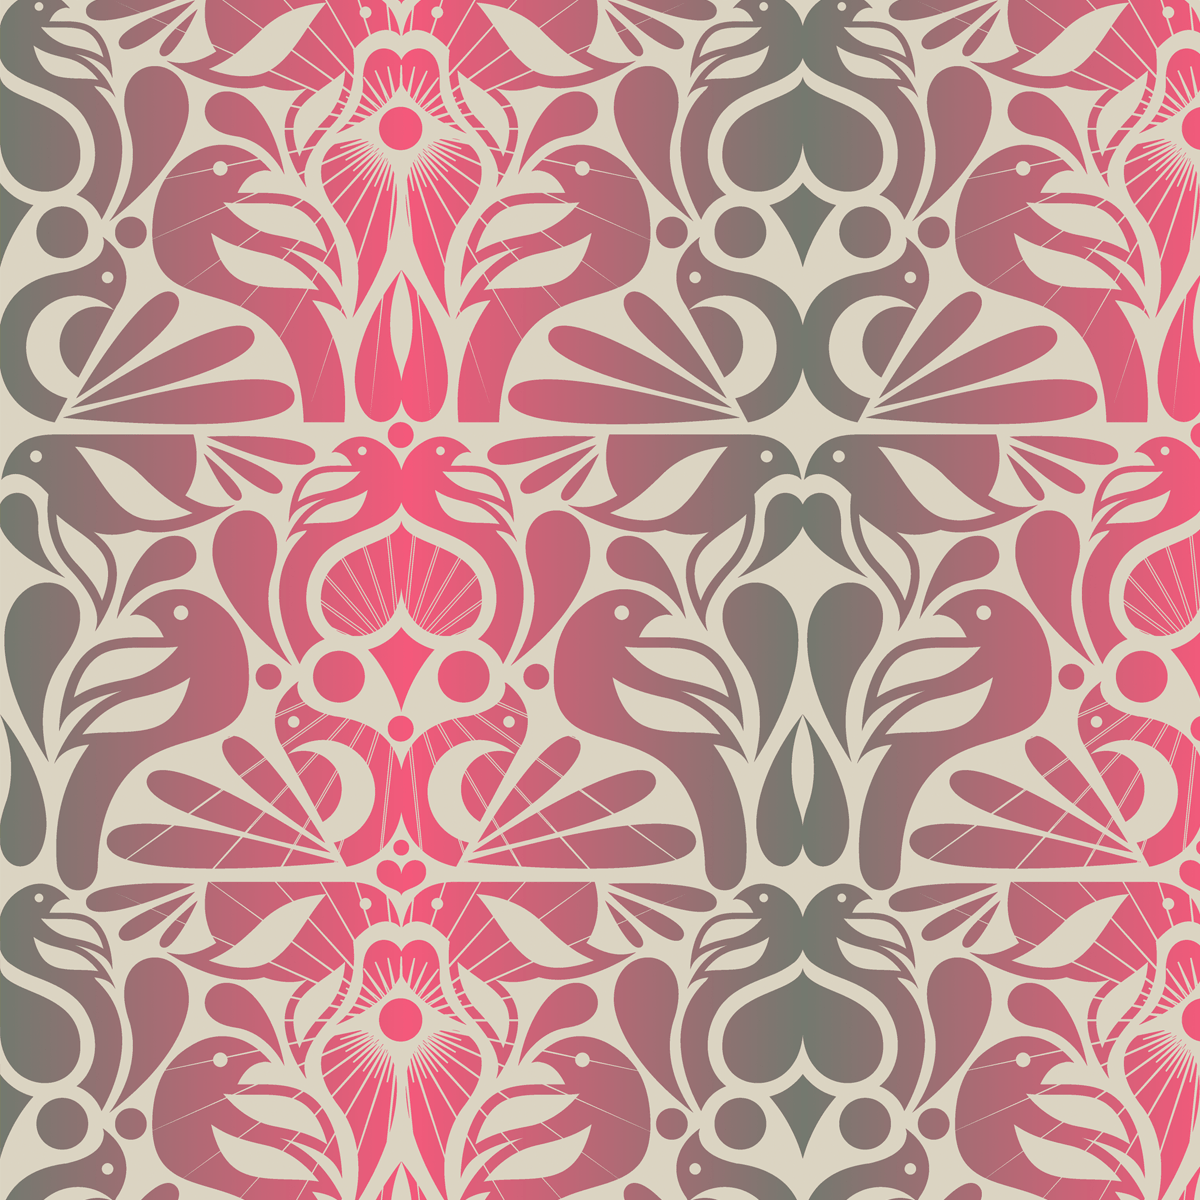 Shop Floral Birds Pattern 70s Retro Wallpaper 1200x1200